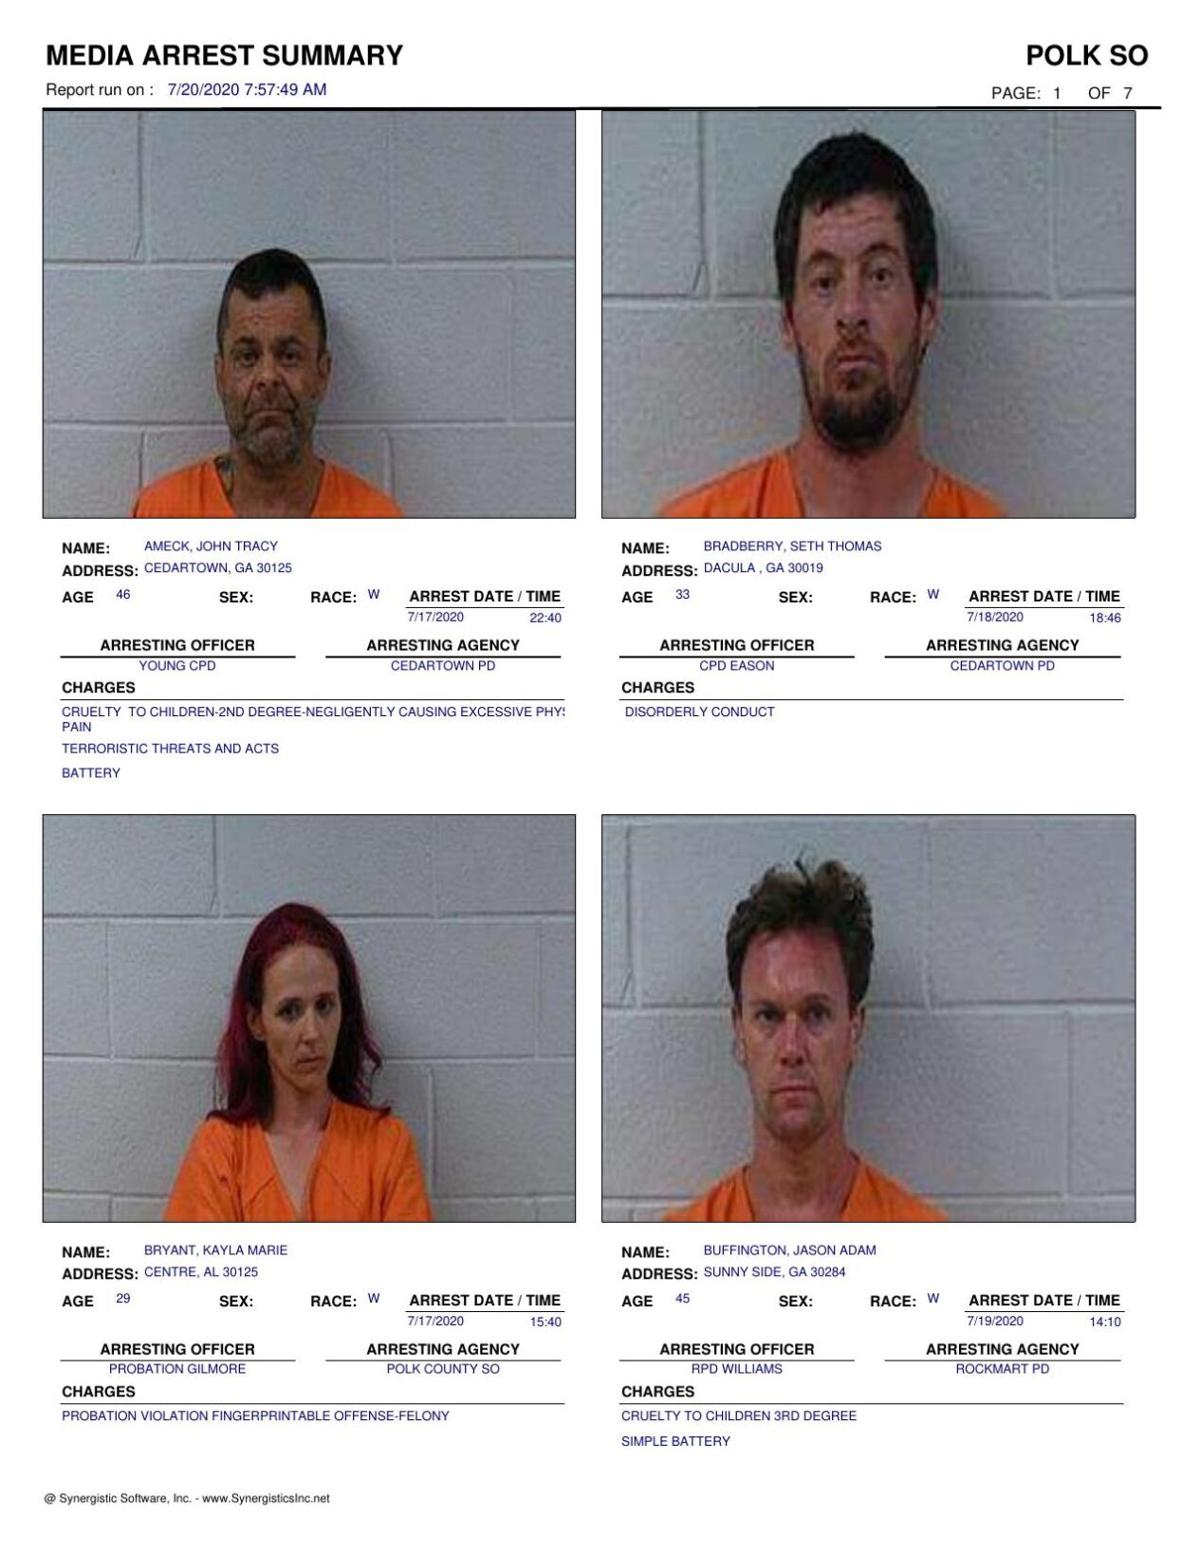 Polk County Jail Report for Monday, July 20